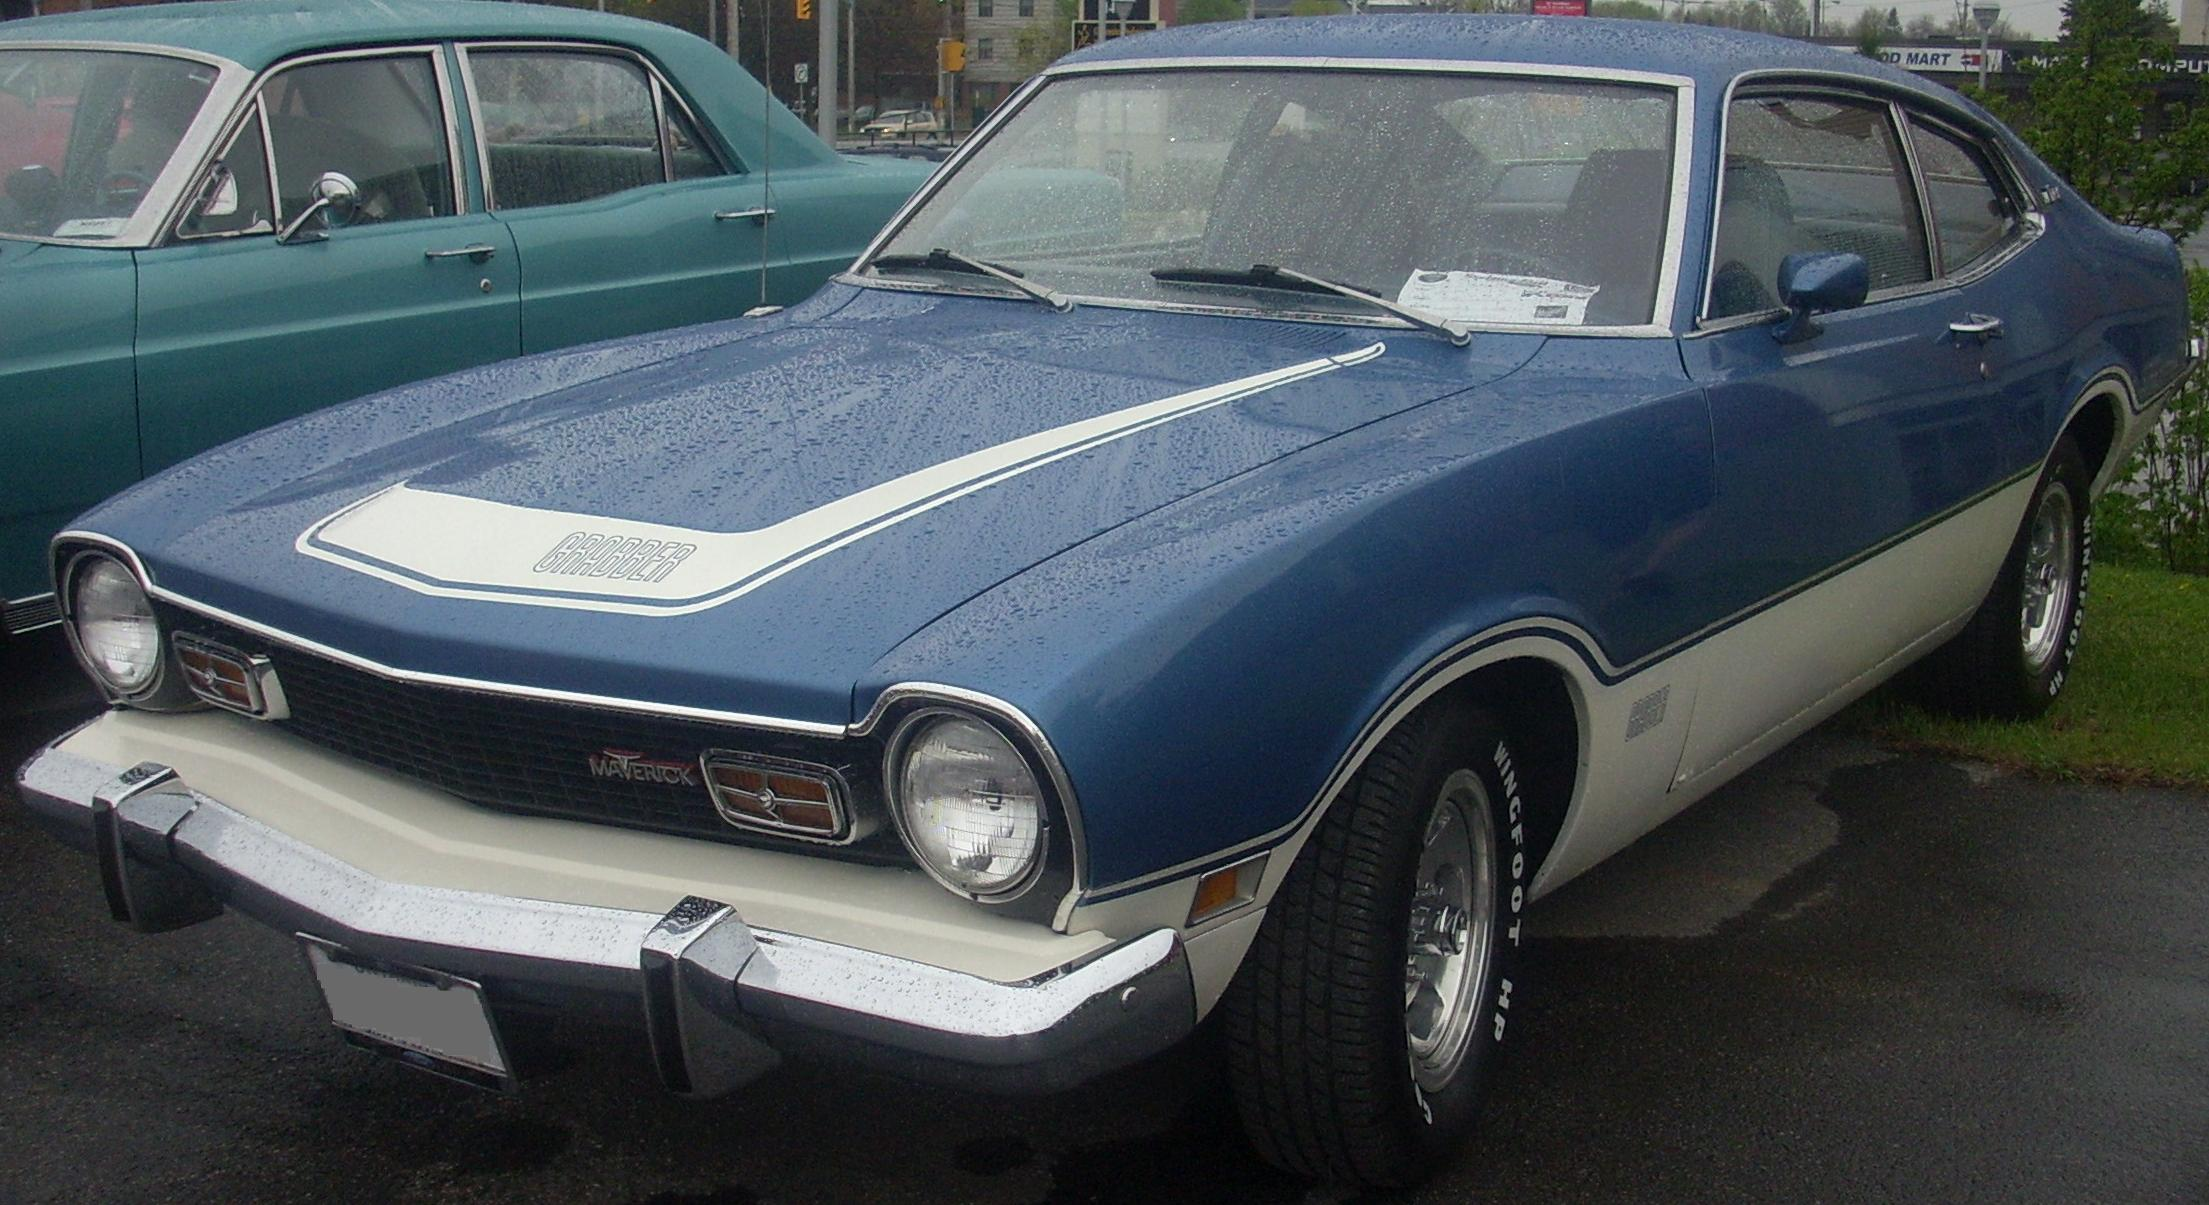 File:'73 Ford Maverick Grabber (Sterling Ford).jpg - Wikipedia, the ...